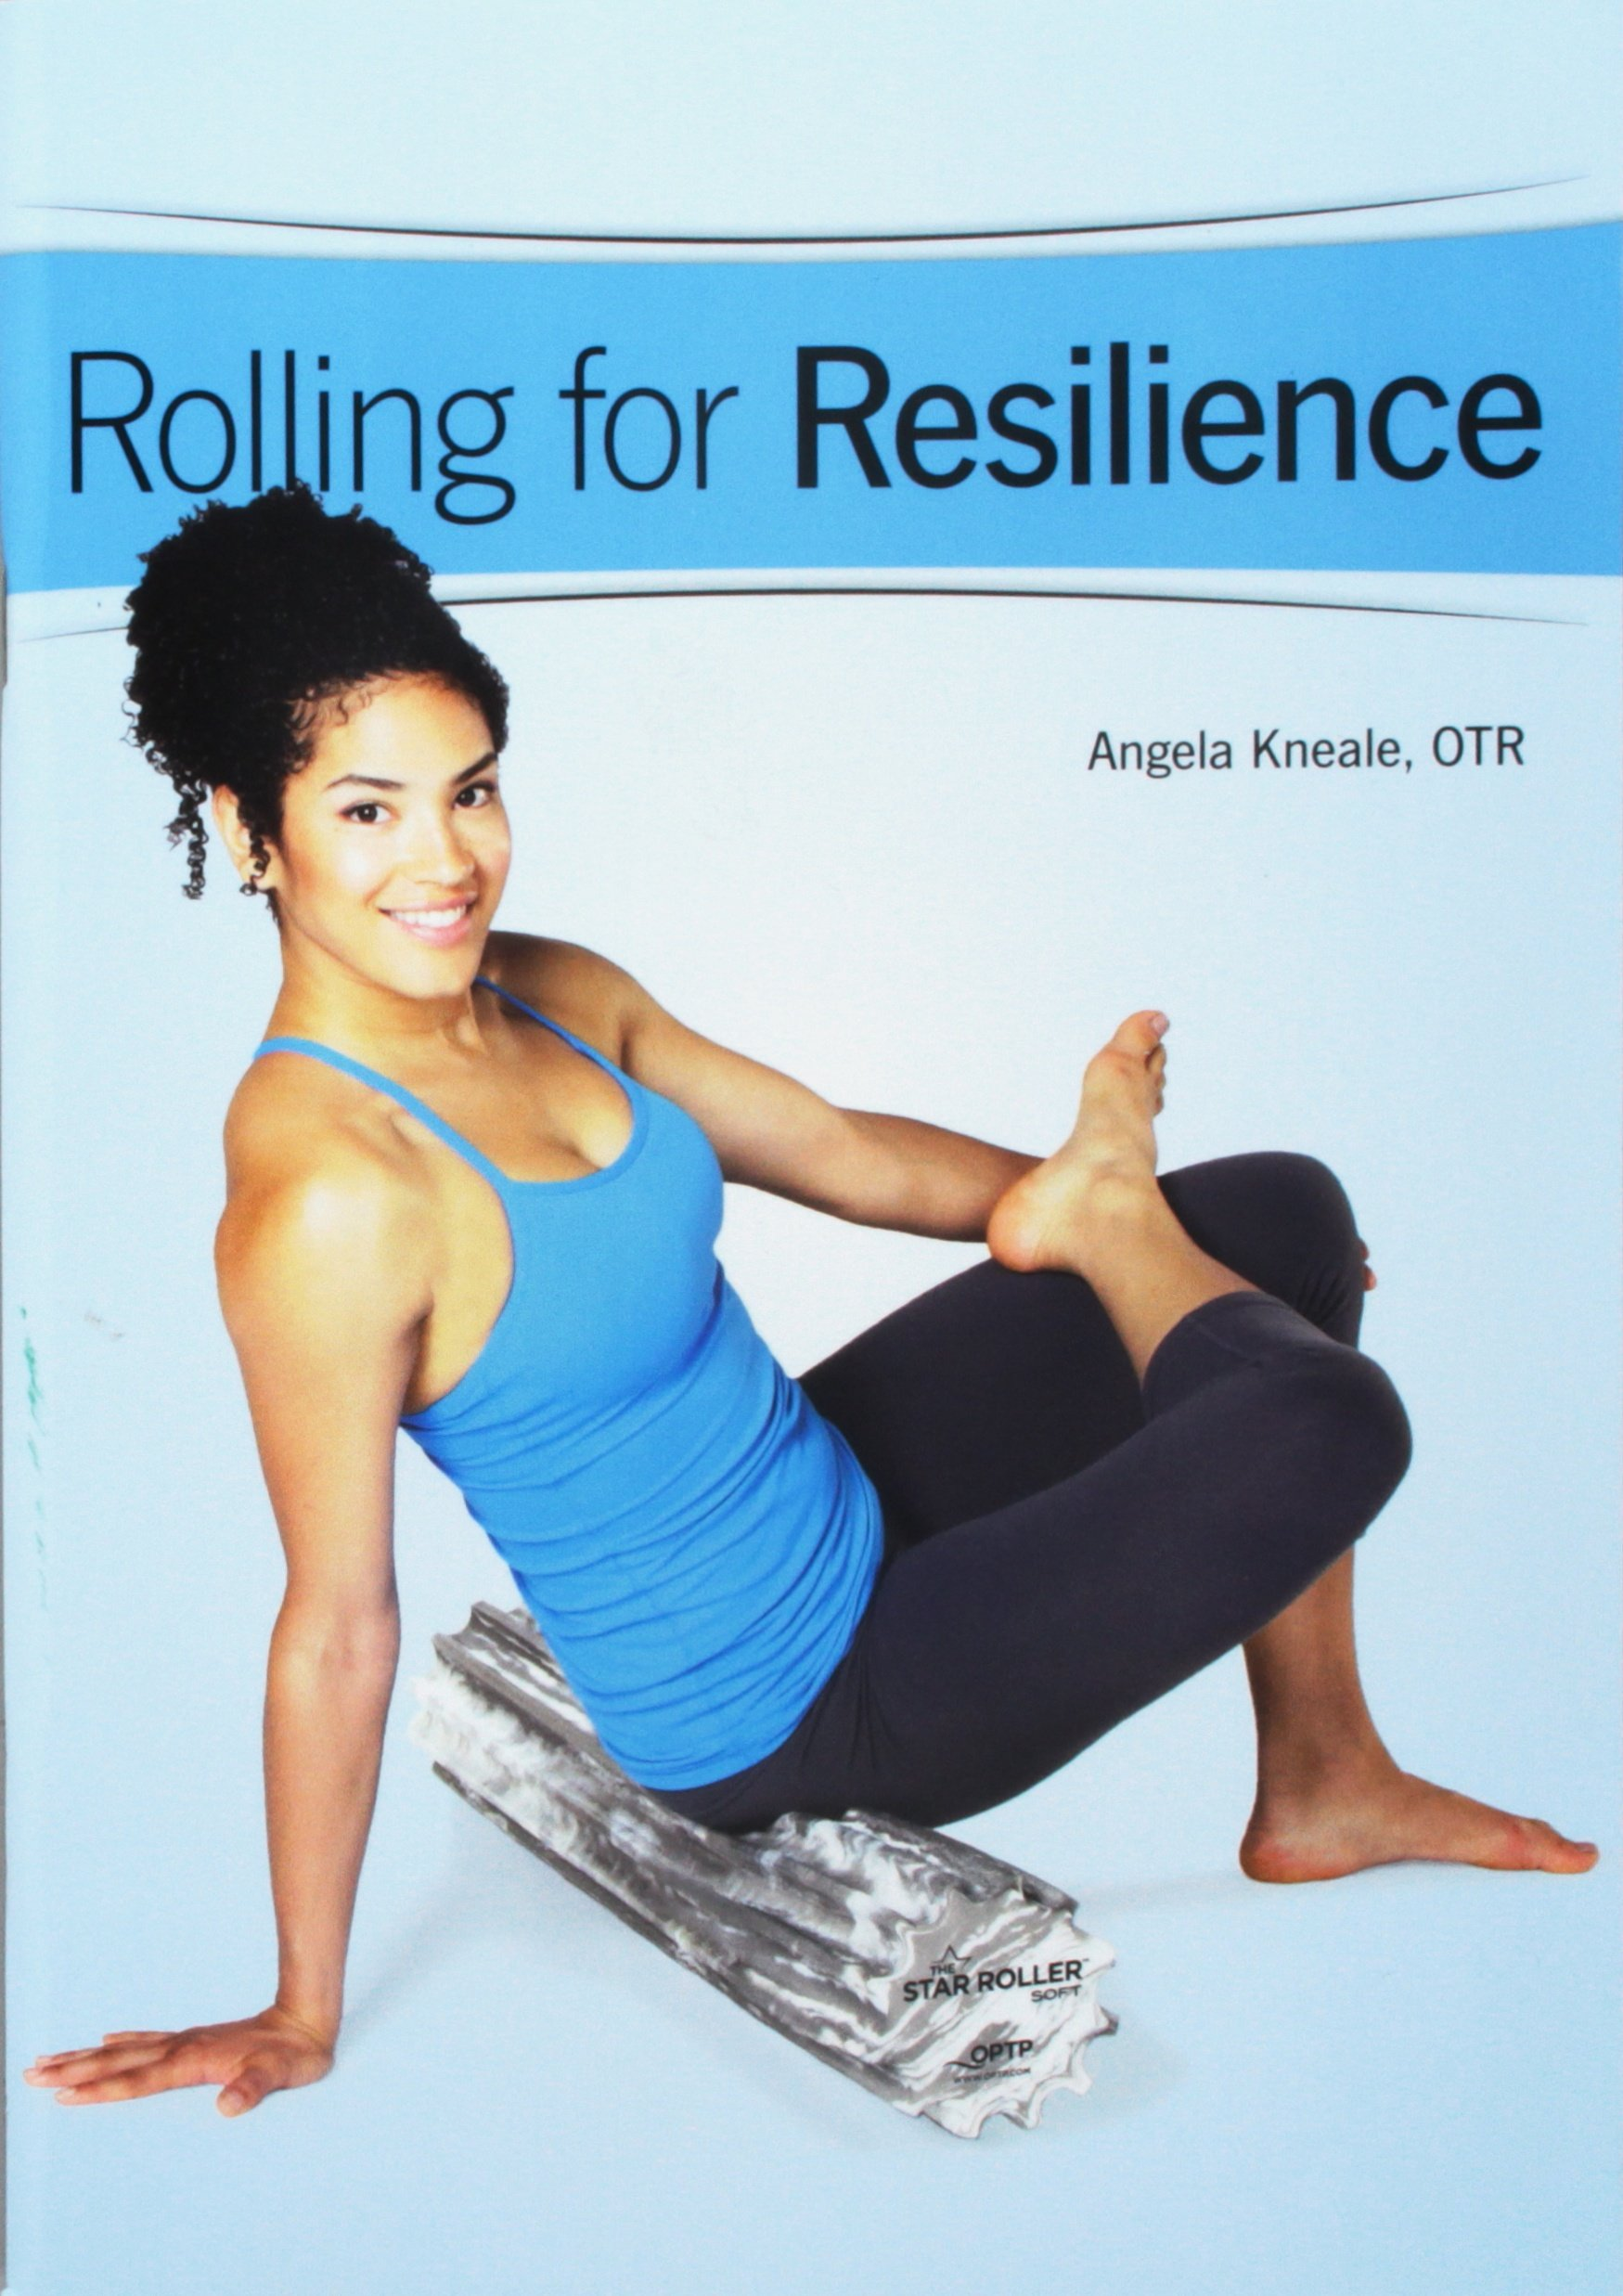 Rolling Resilience Foam Roller Methods product image